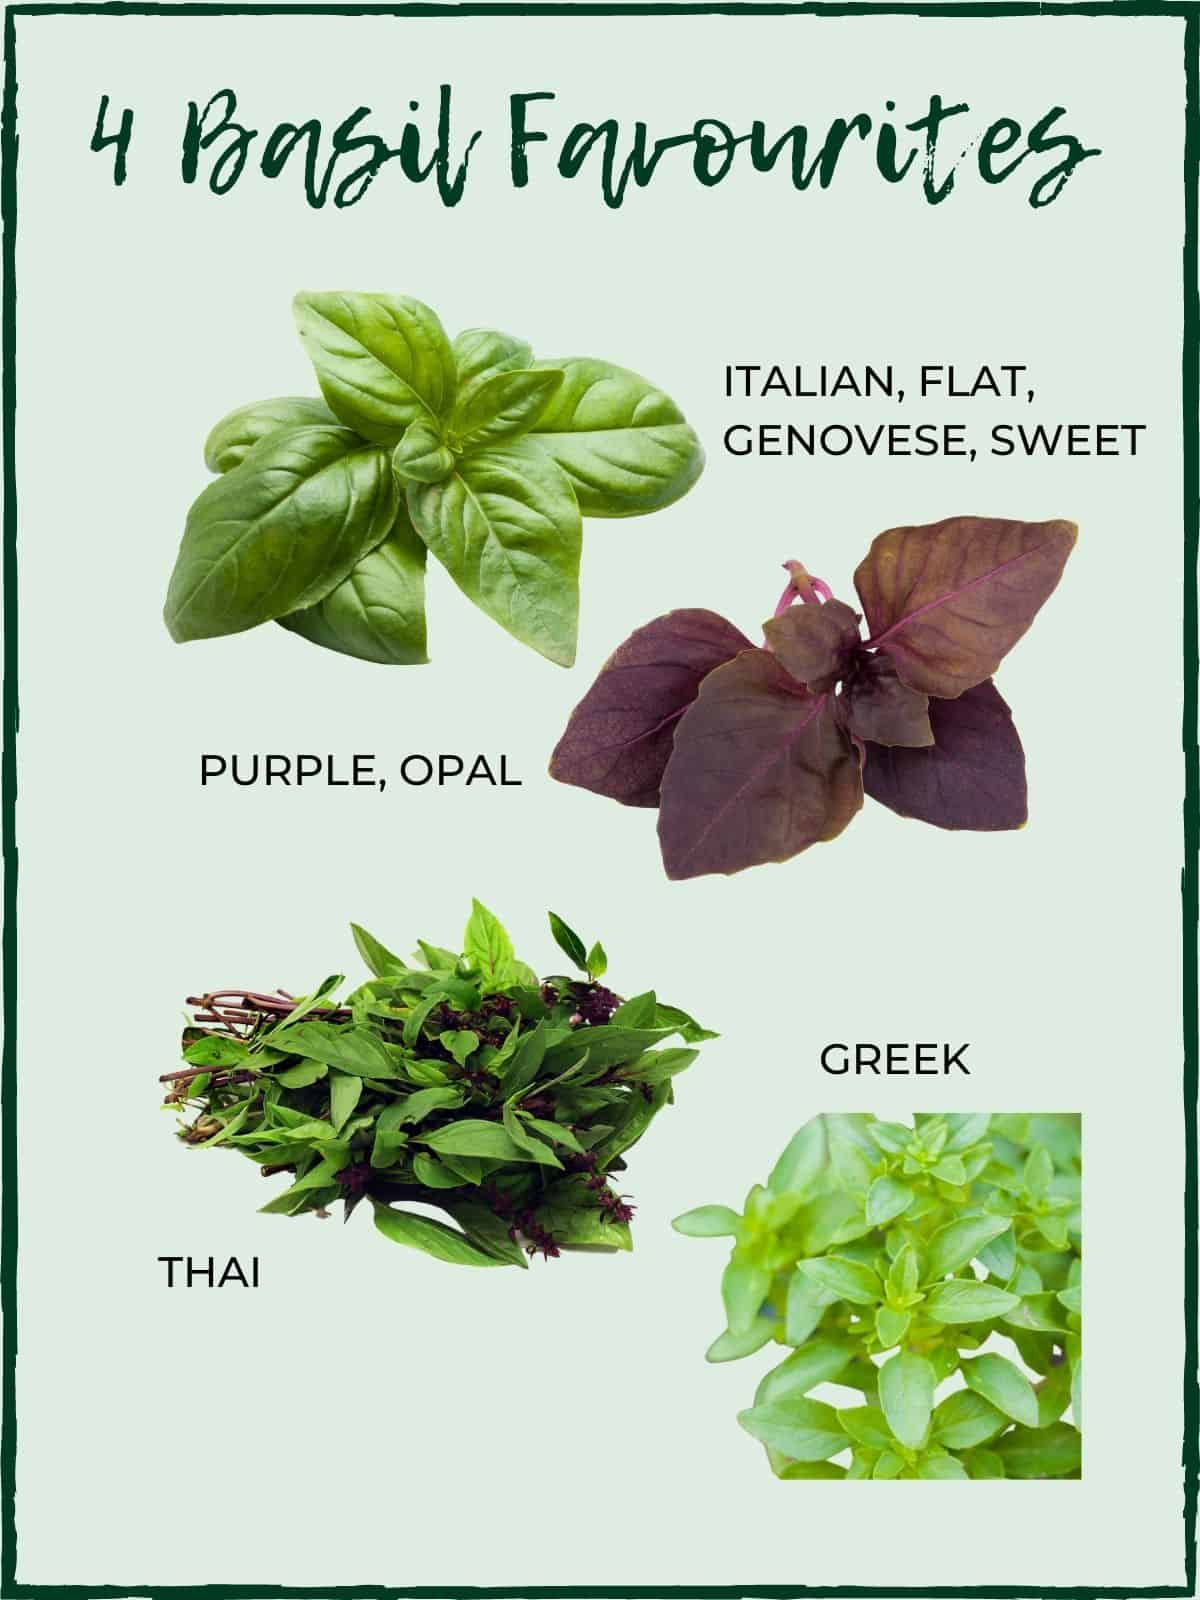 4 COMMON BASIL VARIETIES WITH TEXT OVERLAY